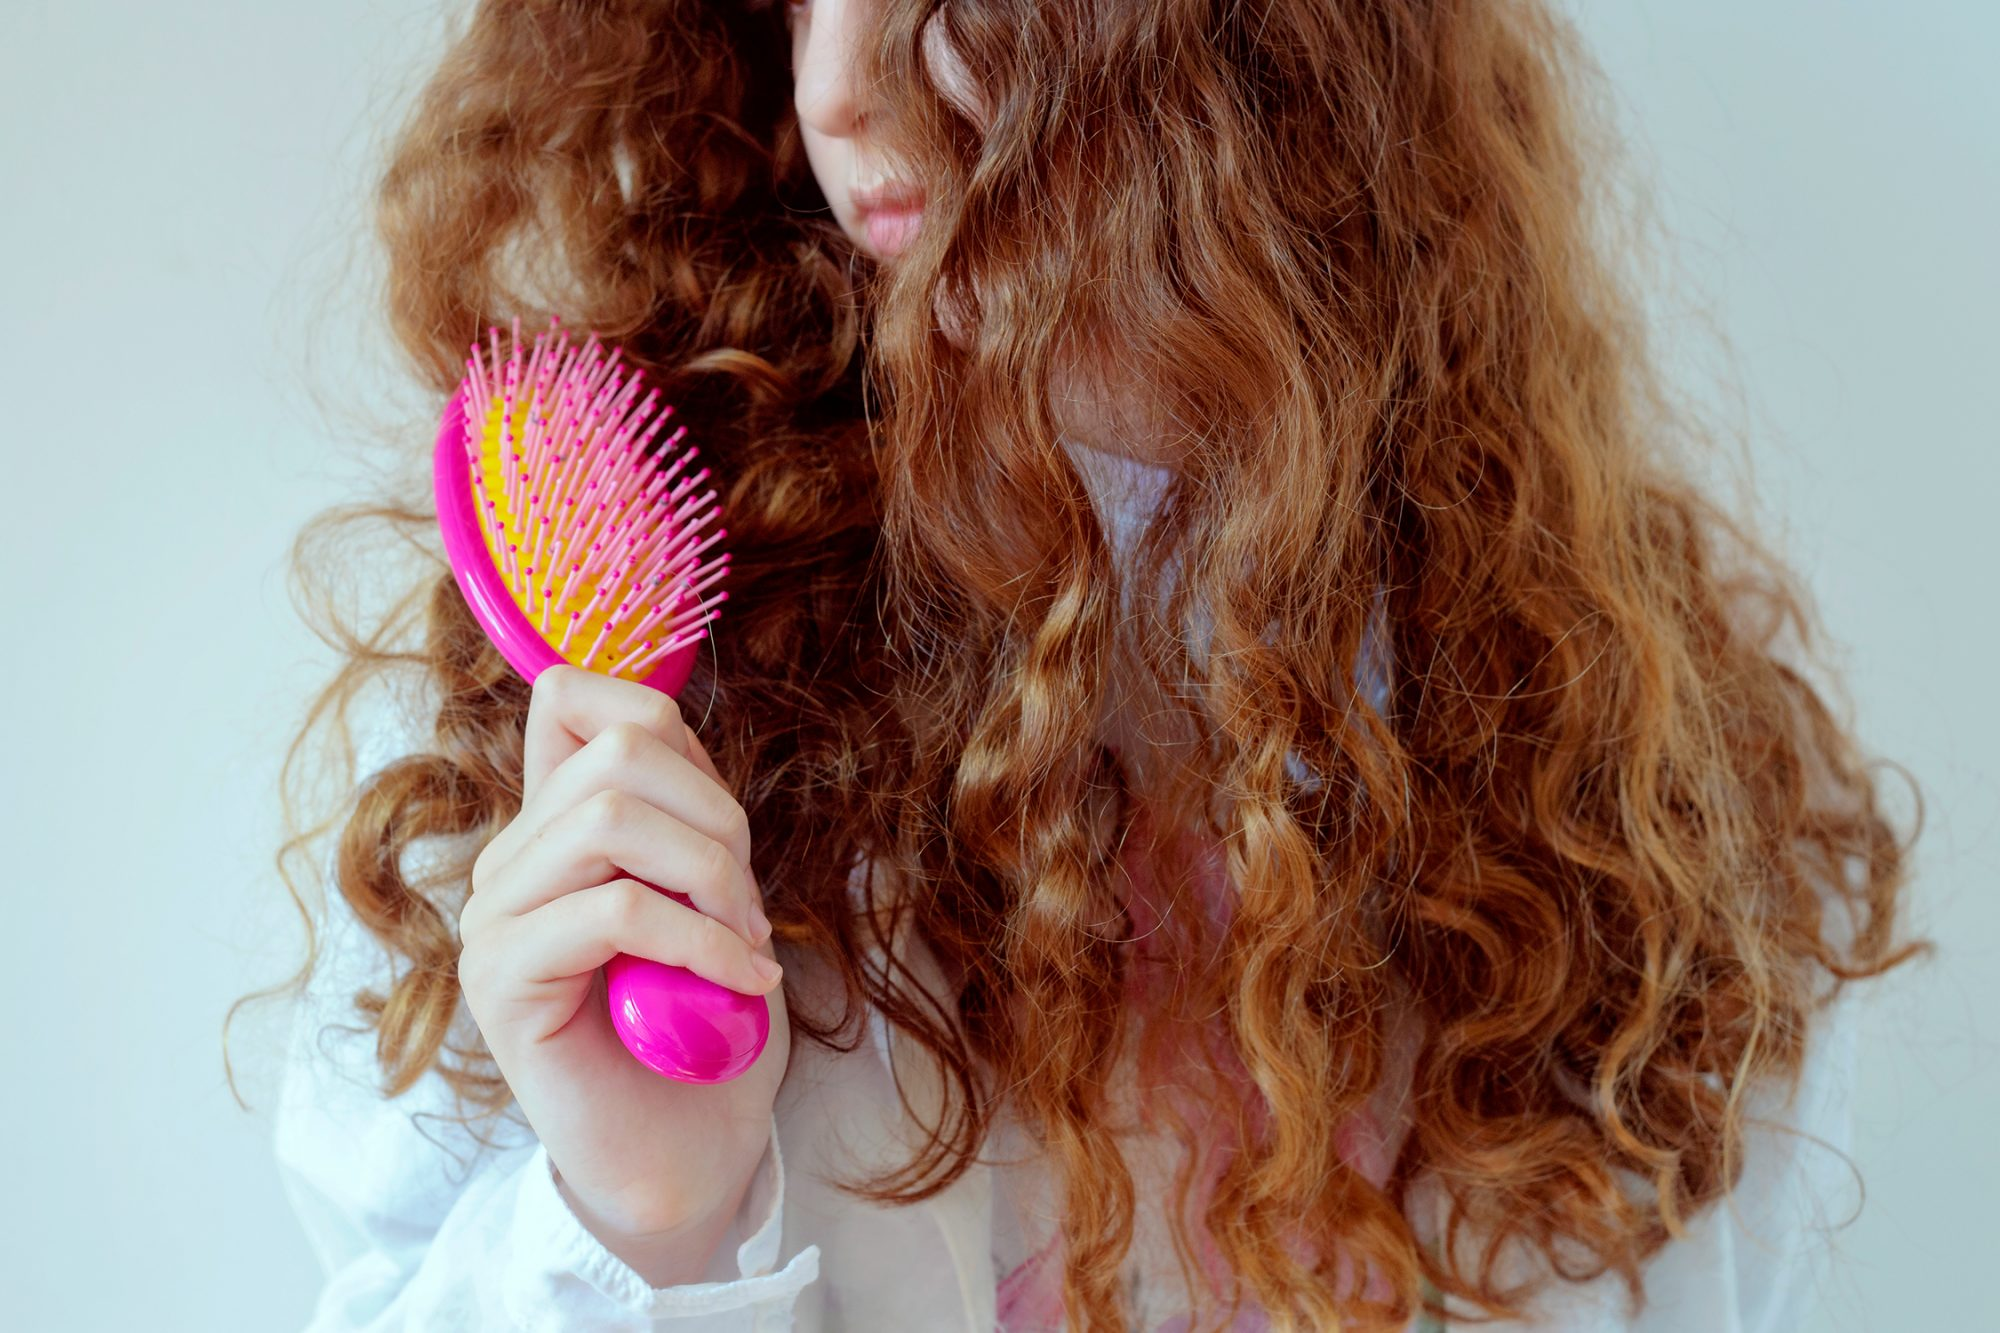 A woman brushing her red, curly hair